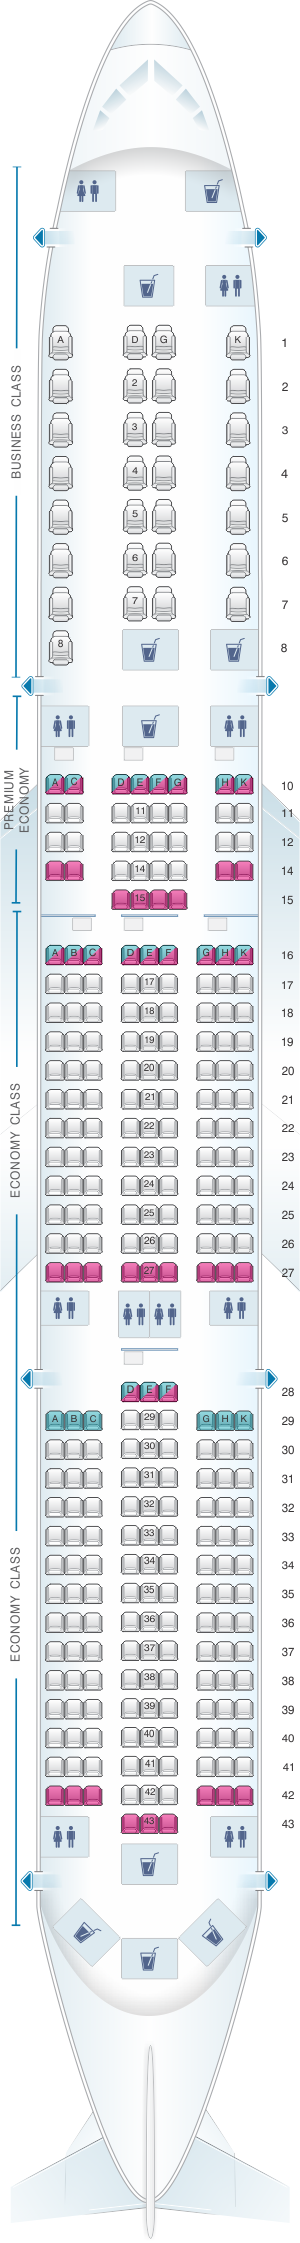 Seat map for Vietnam Airlines Airbus A350 Config.2